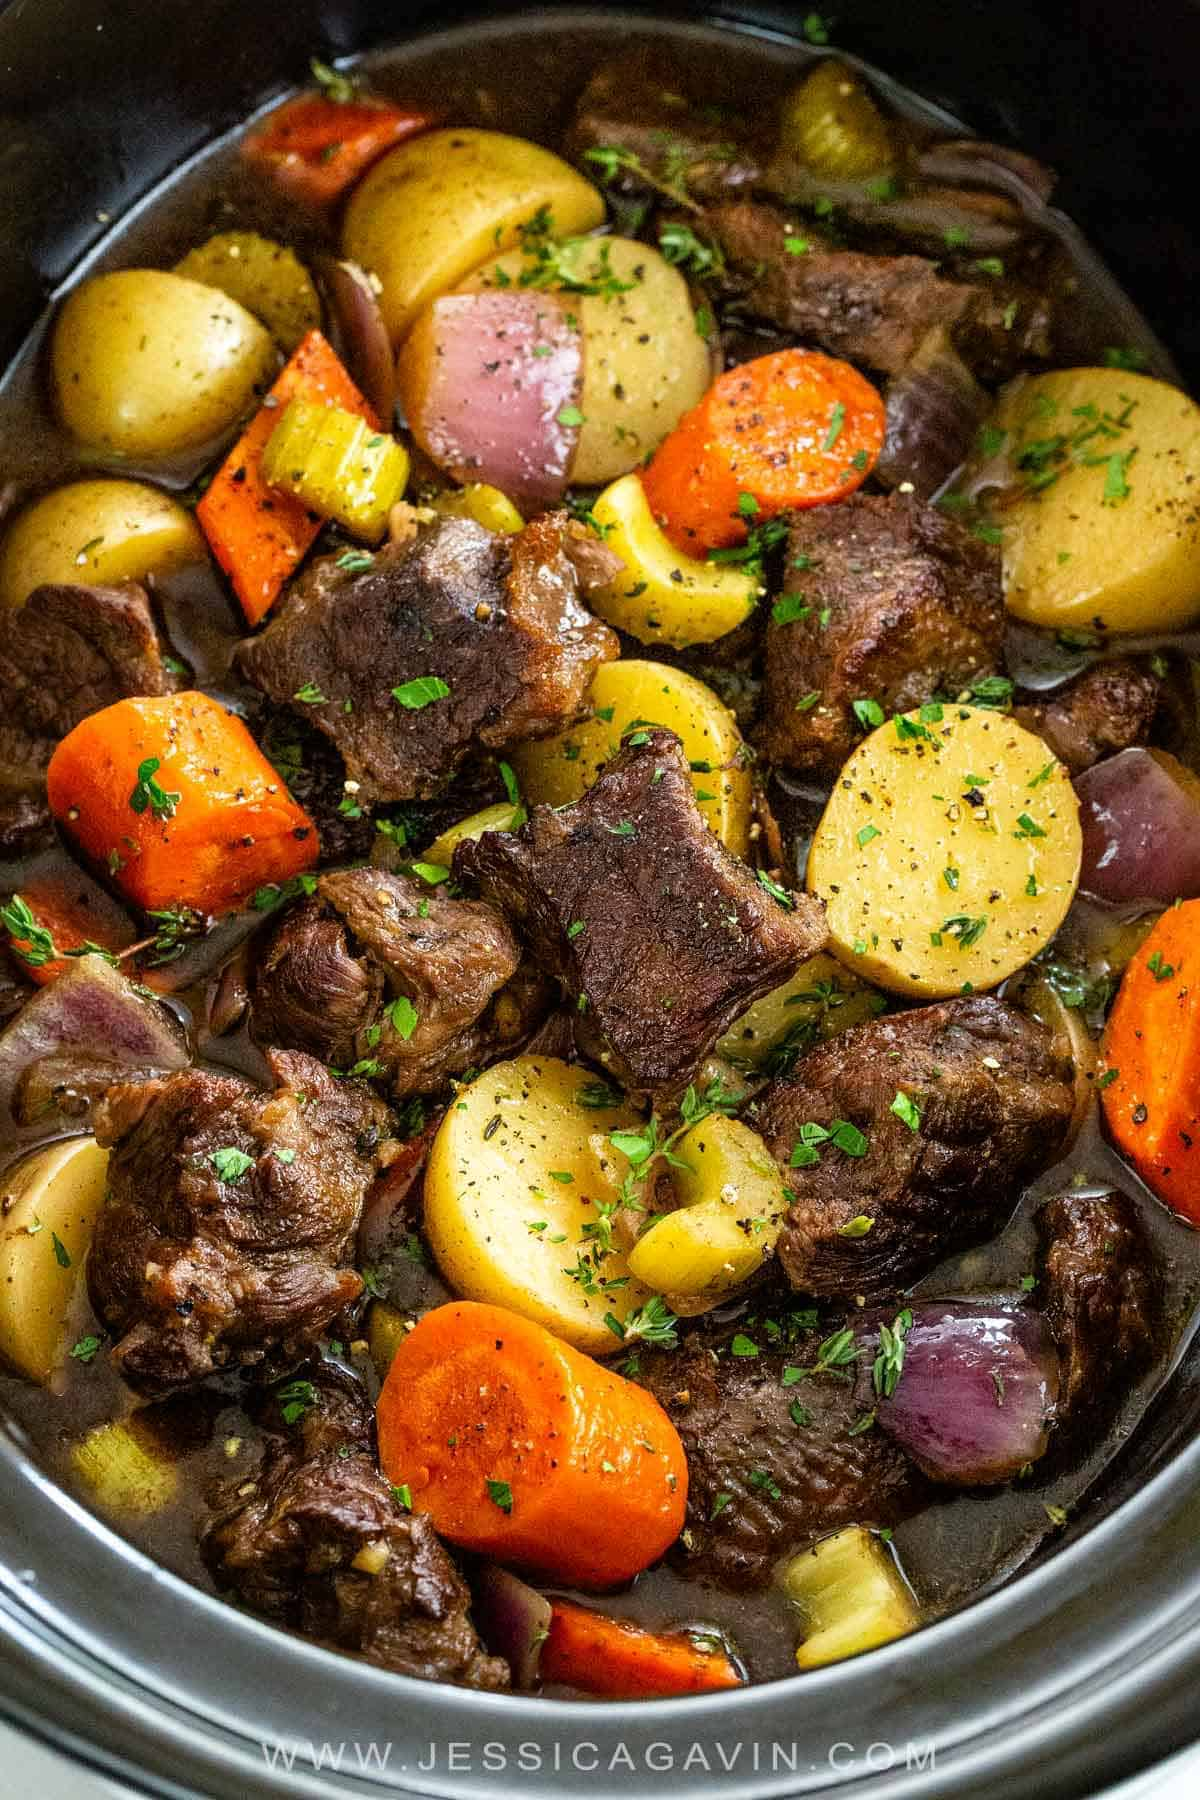 Get ready for a hearty bowl of slow cooker beef stew made with potatoes, onions, celery, carrots, and seared beef for extra flavor. #beefstew #slowcooker #crockpot